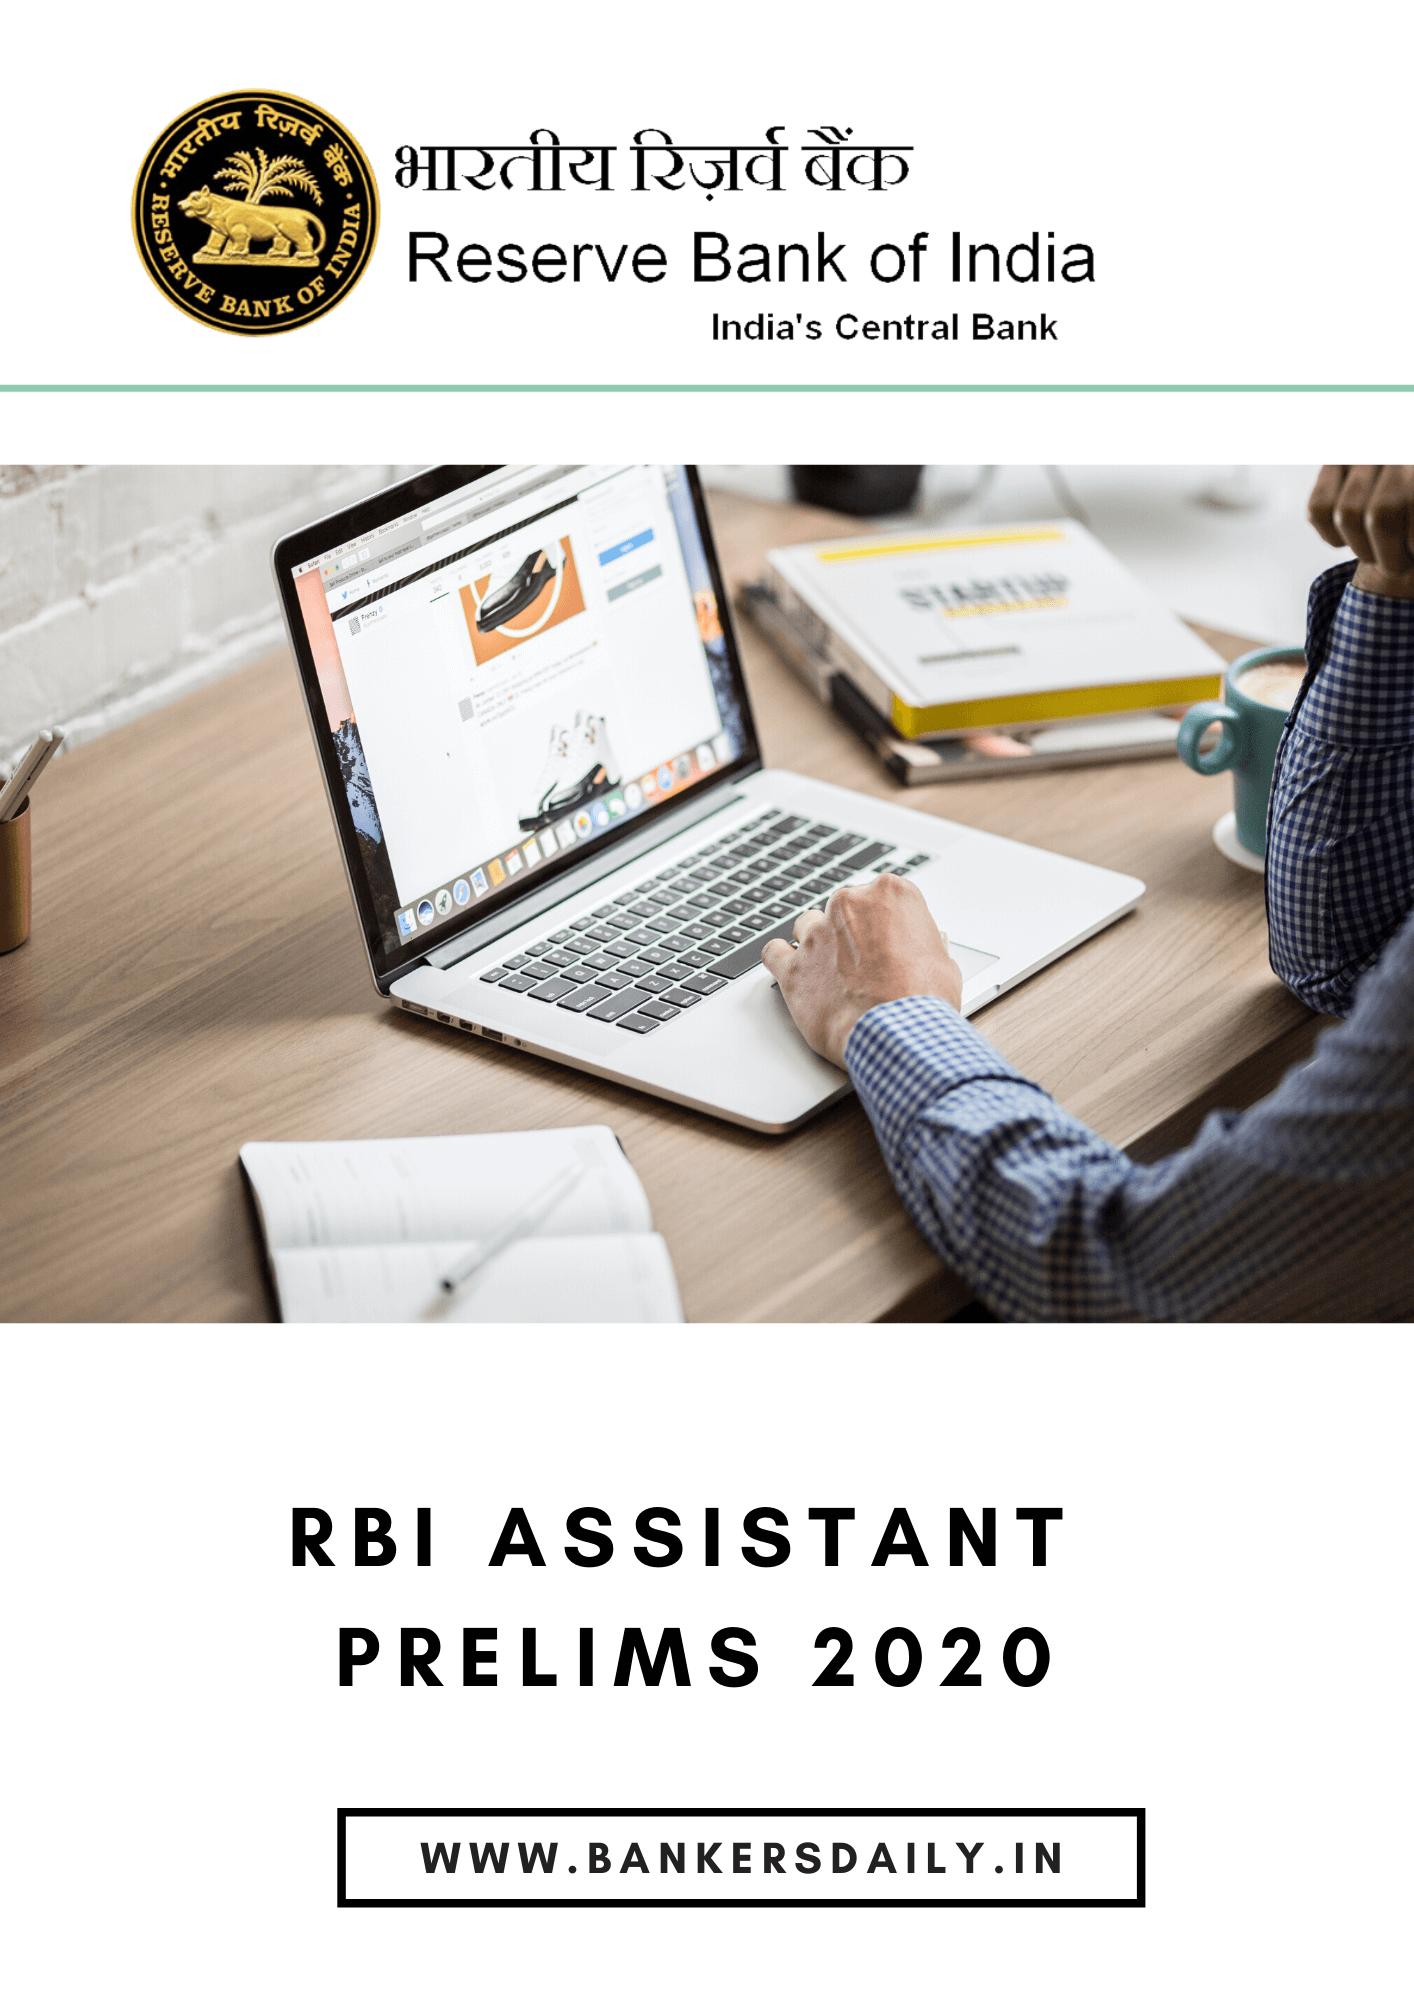 RBI ASSISTANT PRELIMS 2020 - REVIEW & ANALYSIS - SLOT 1 - 4 (February 14, 2020)